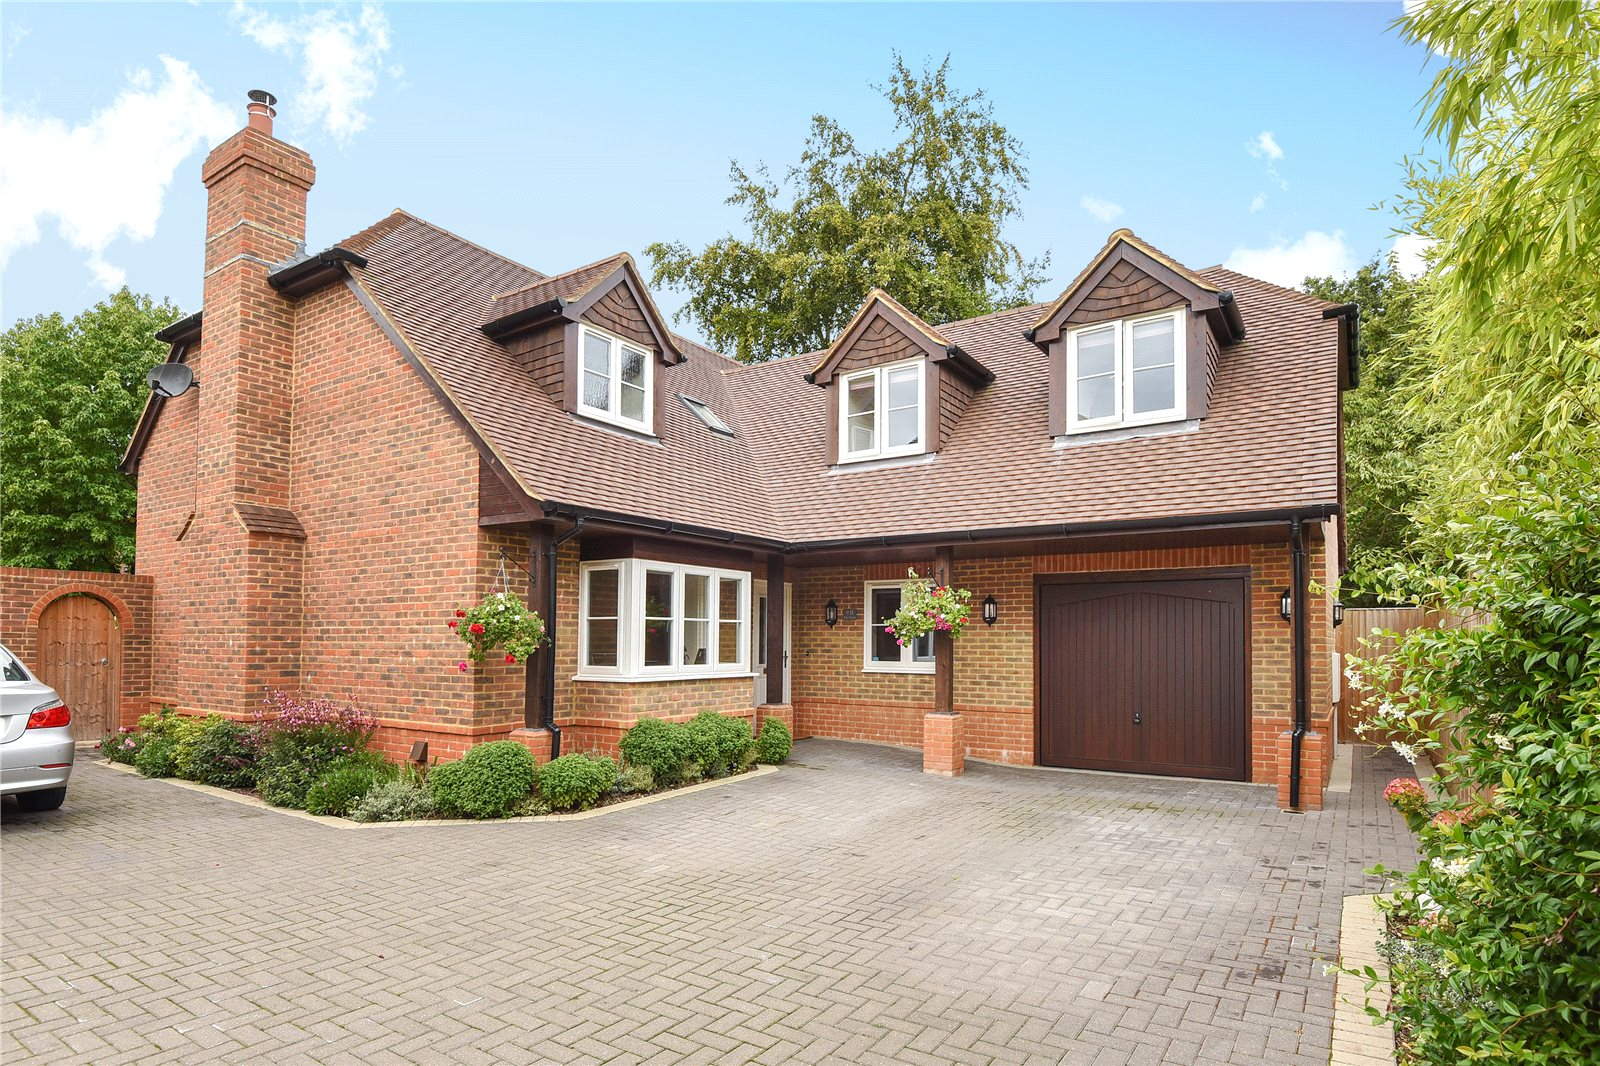 4 Bedrooms Detached House for sale in Ravenswood Avenue, Crowthorne, Berkshire, RG45